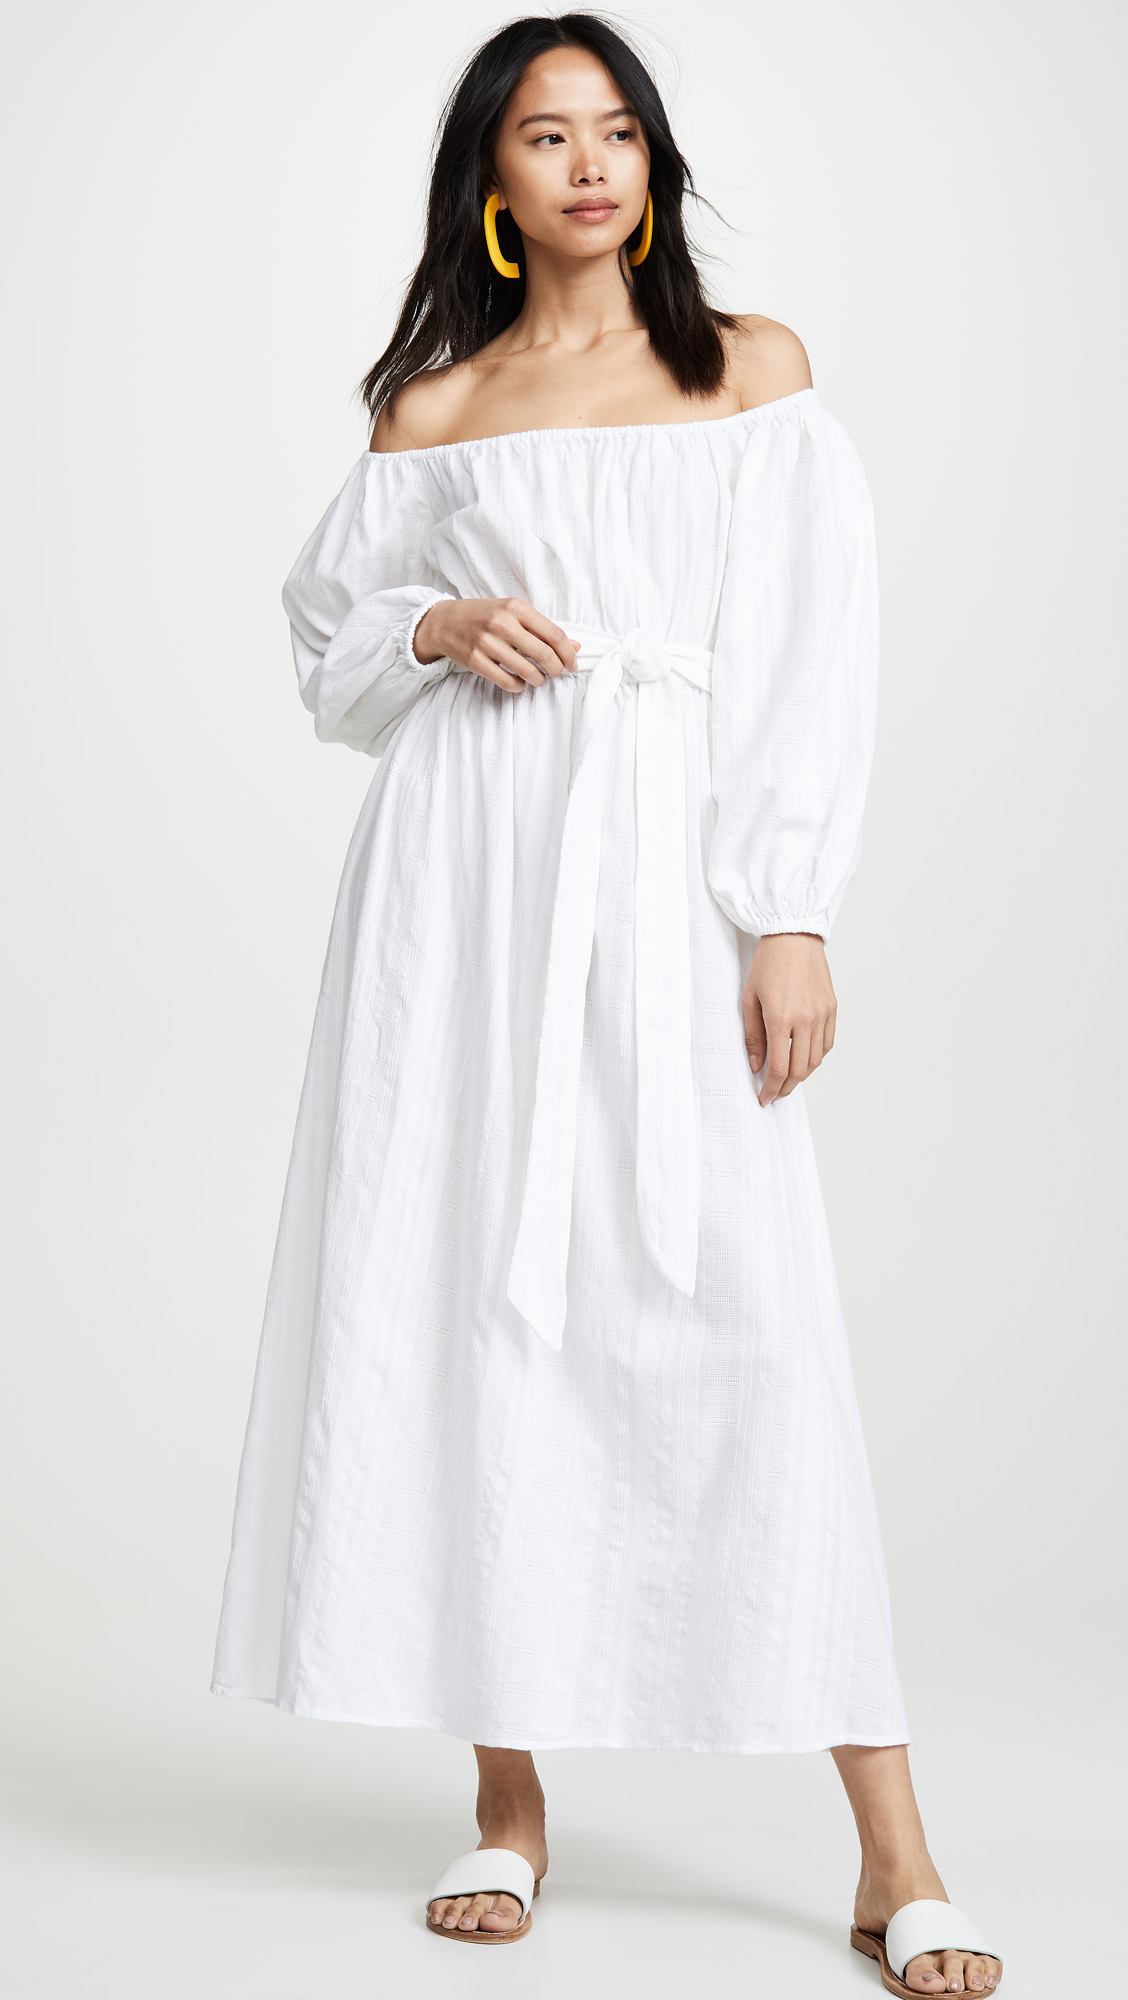 Off-the-Shoulder White Maxi Dress Tie Waist